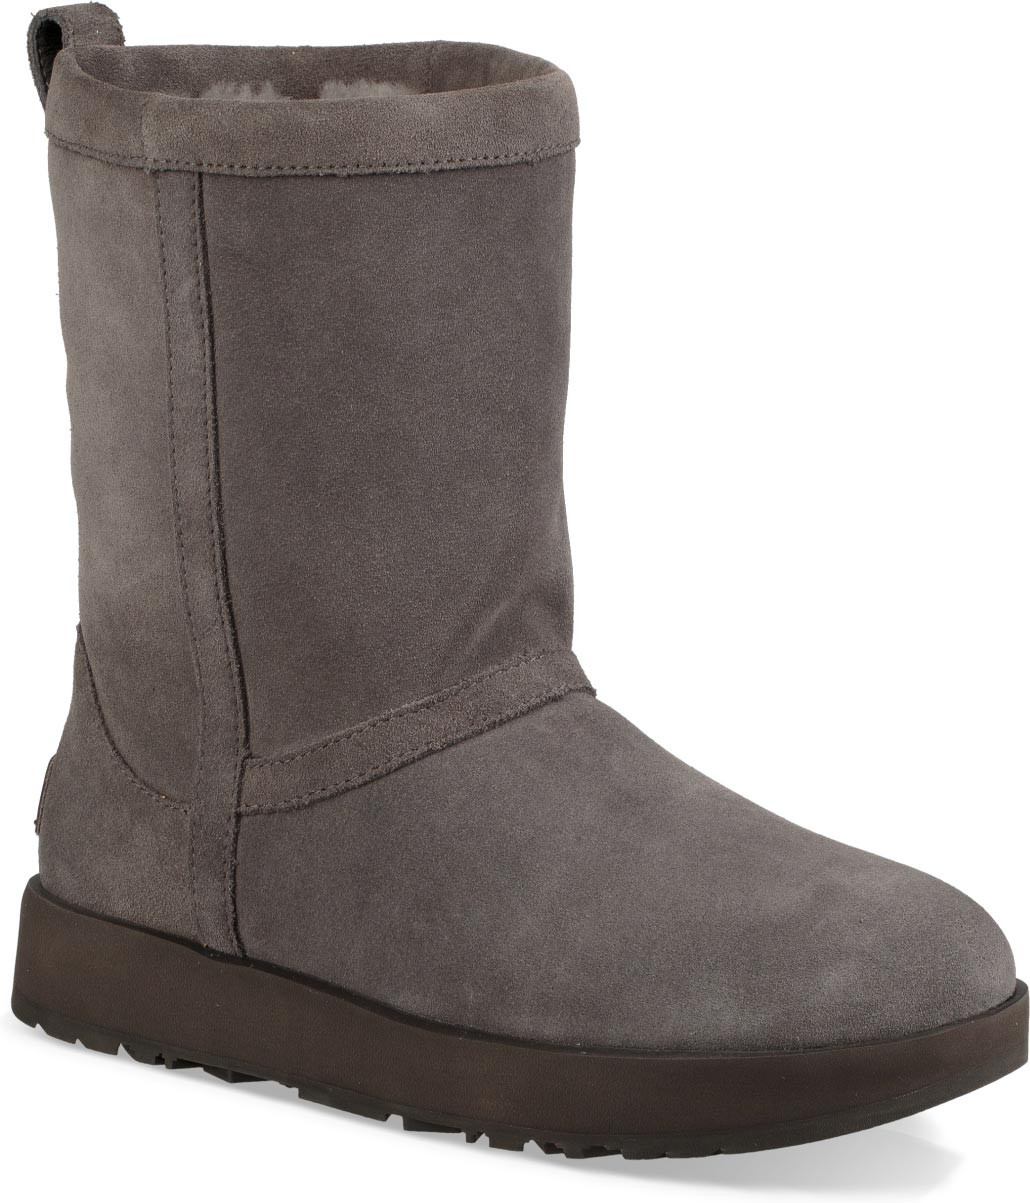 ugg classic short waterproof nz